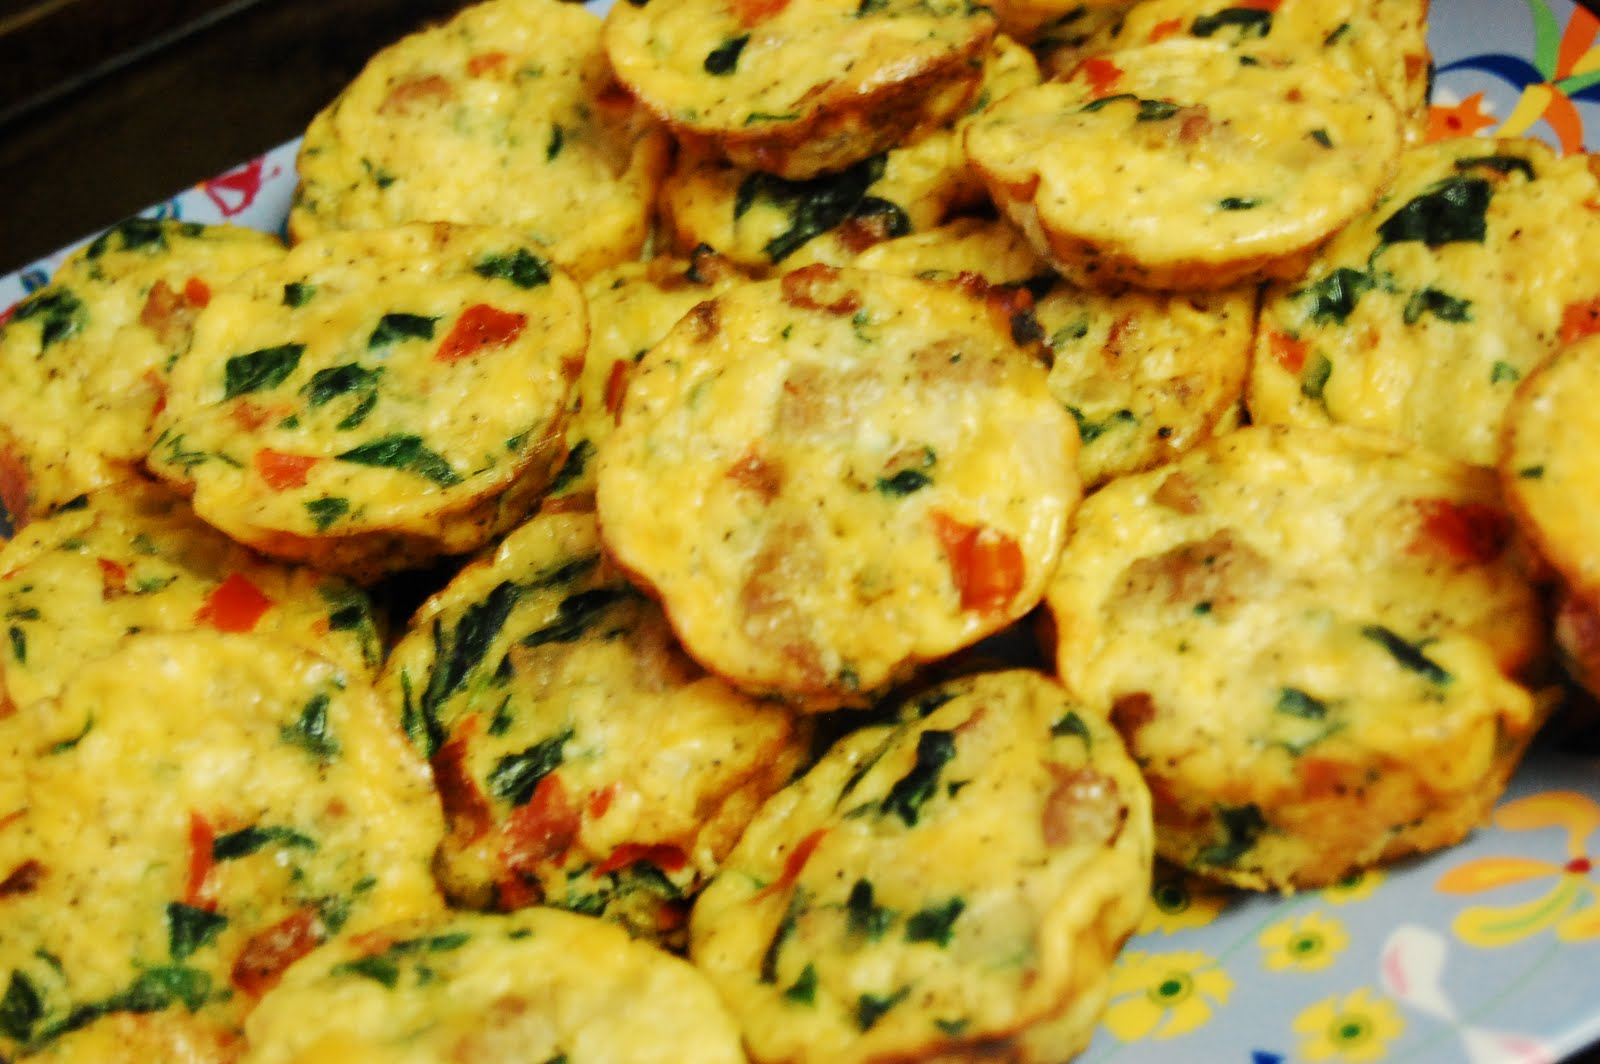 Frittata 'cupcakes' with spinach, sausage, red pepper & cheddar}